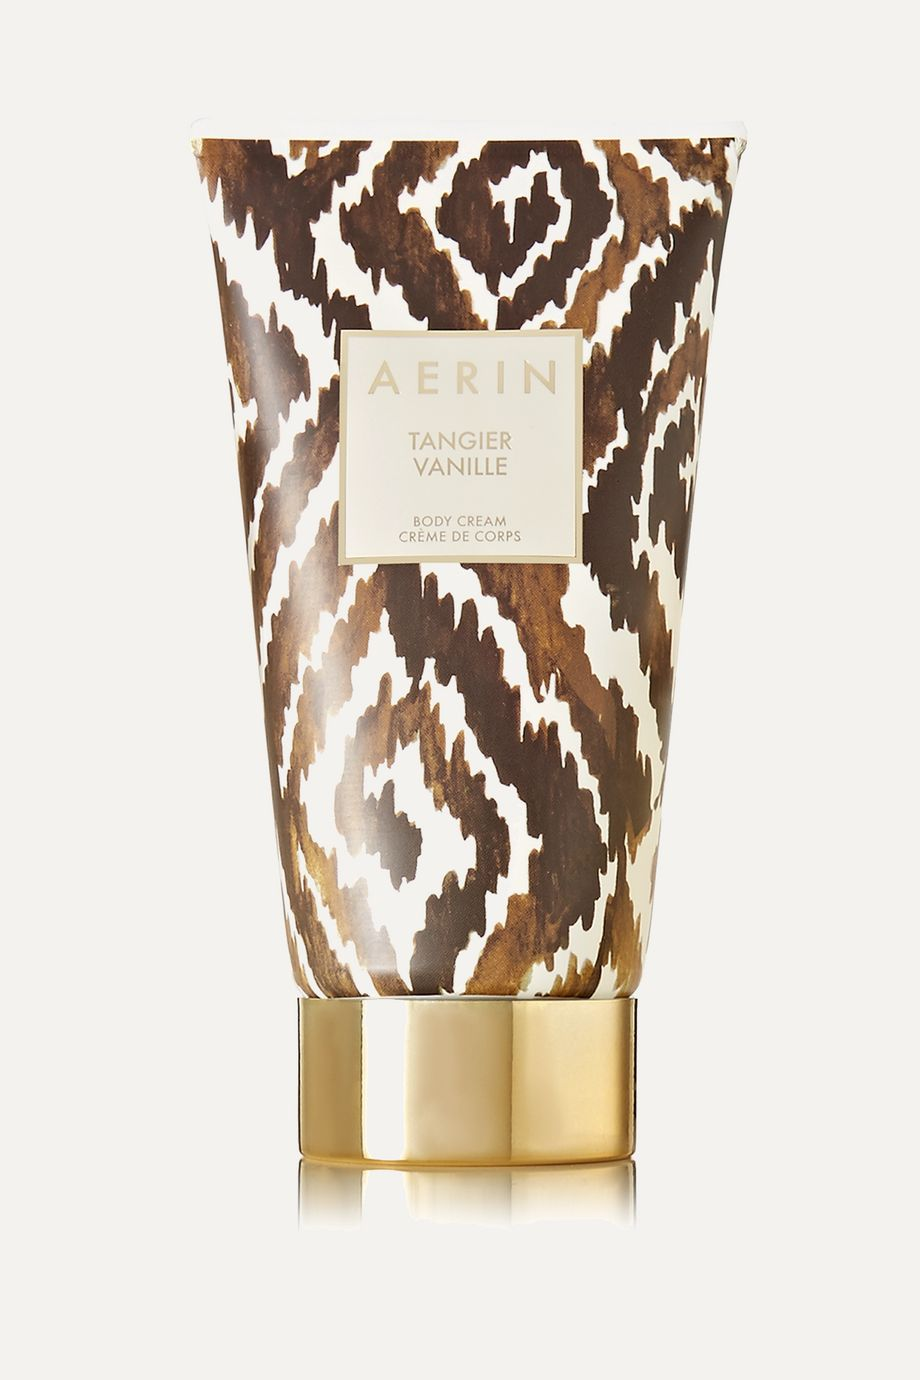 AERIN Beauty Tangier Vanille Body Cream, 150ml